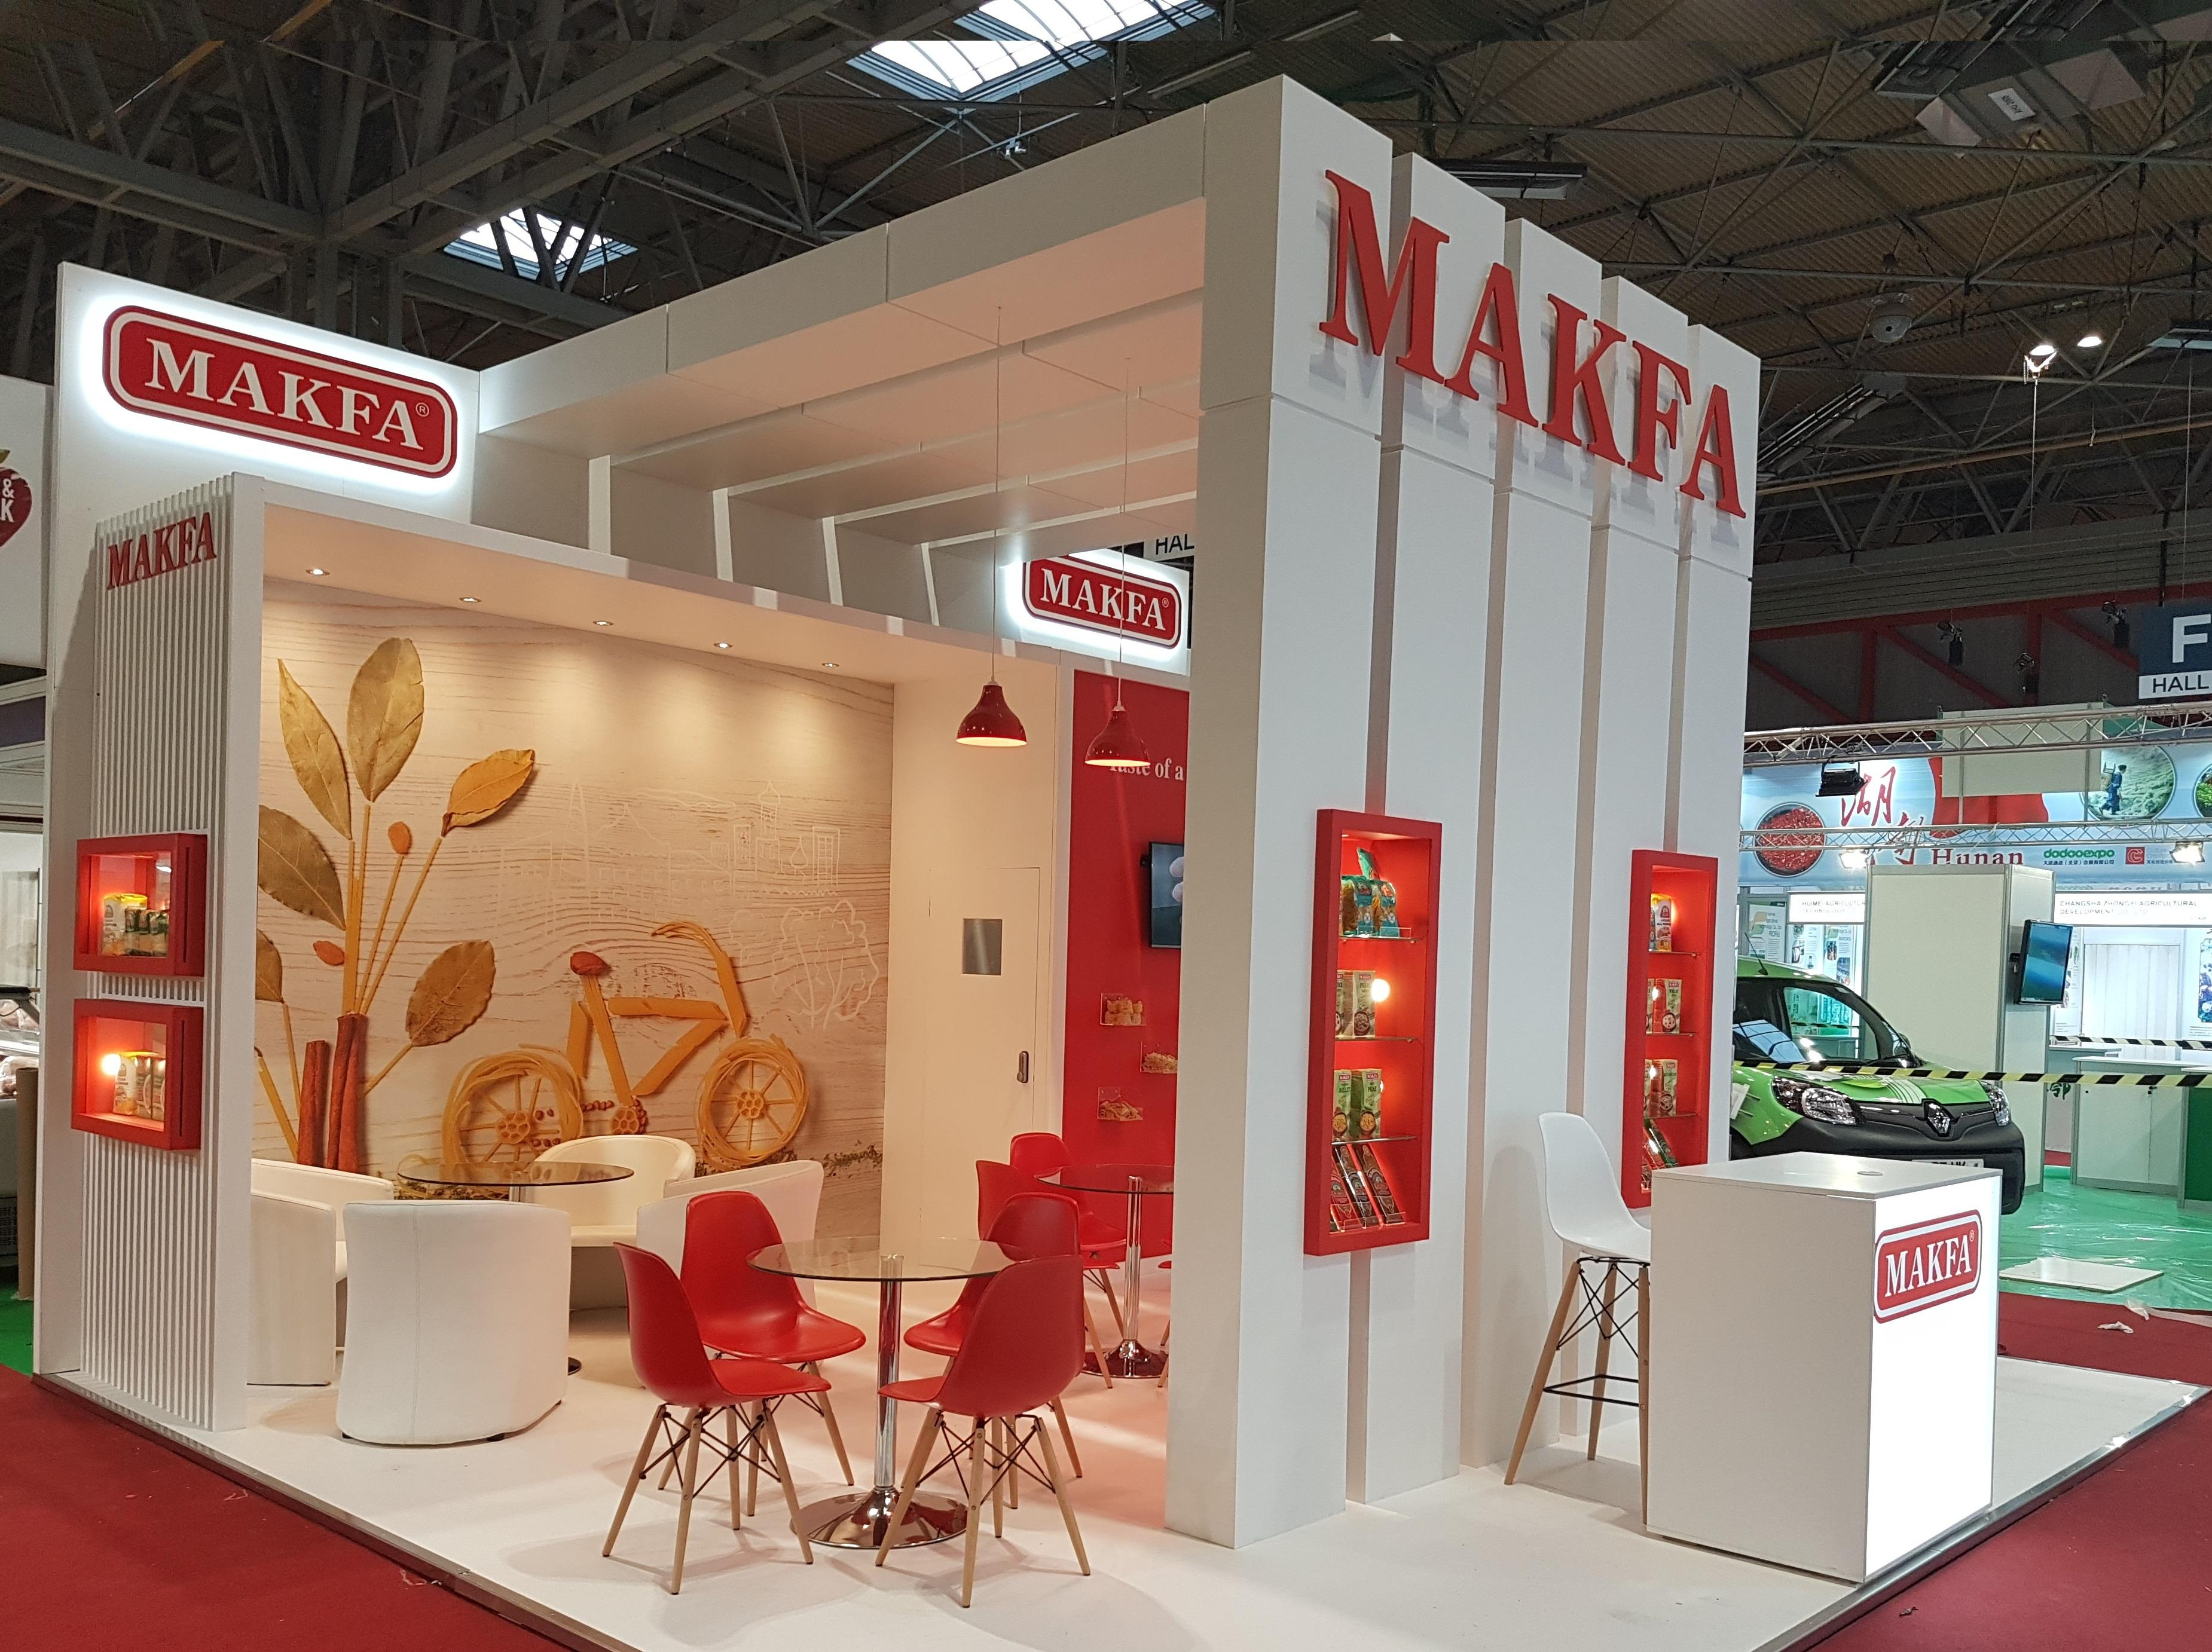 CASE STUDY: Mafka exhibition stand - Food & Drink Expo, 16-18 April 2018, NEC, Birmingham